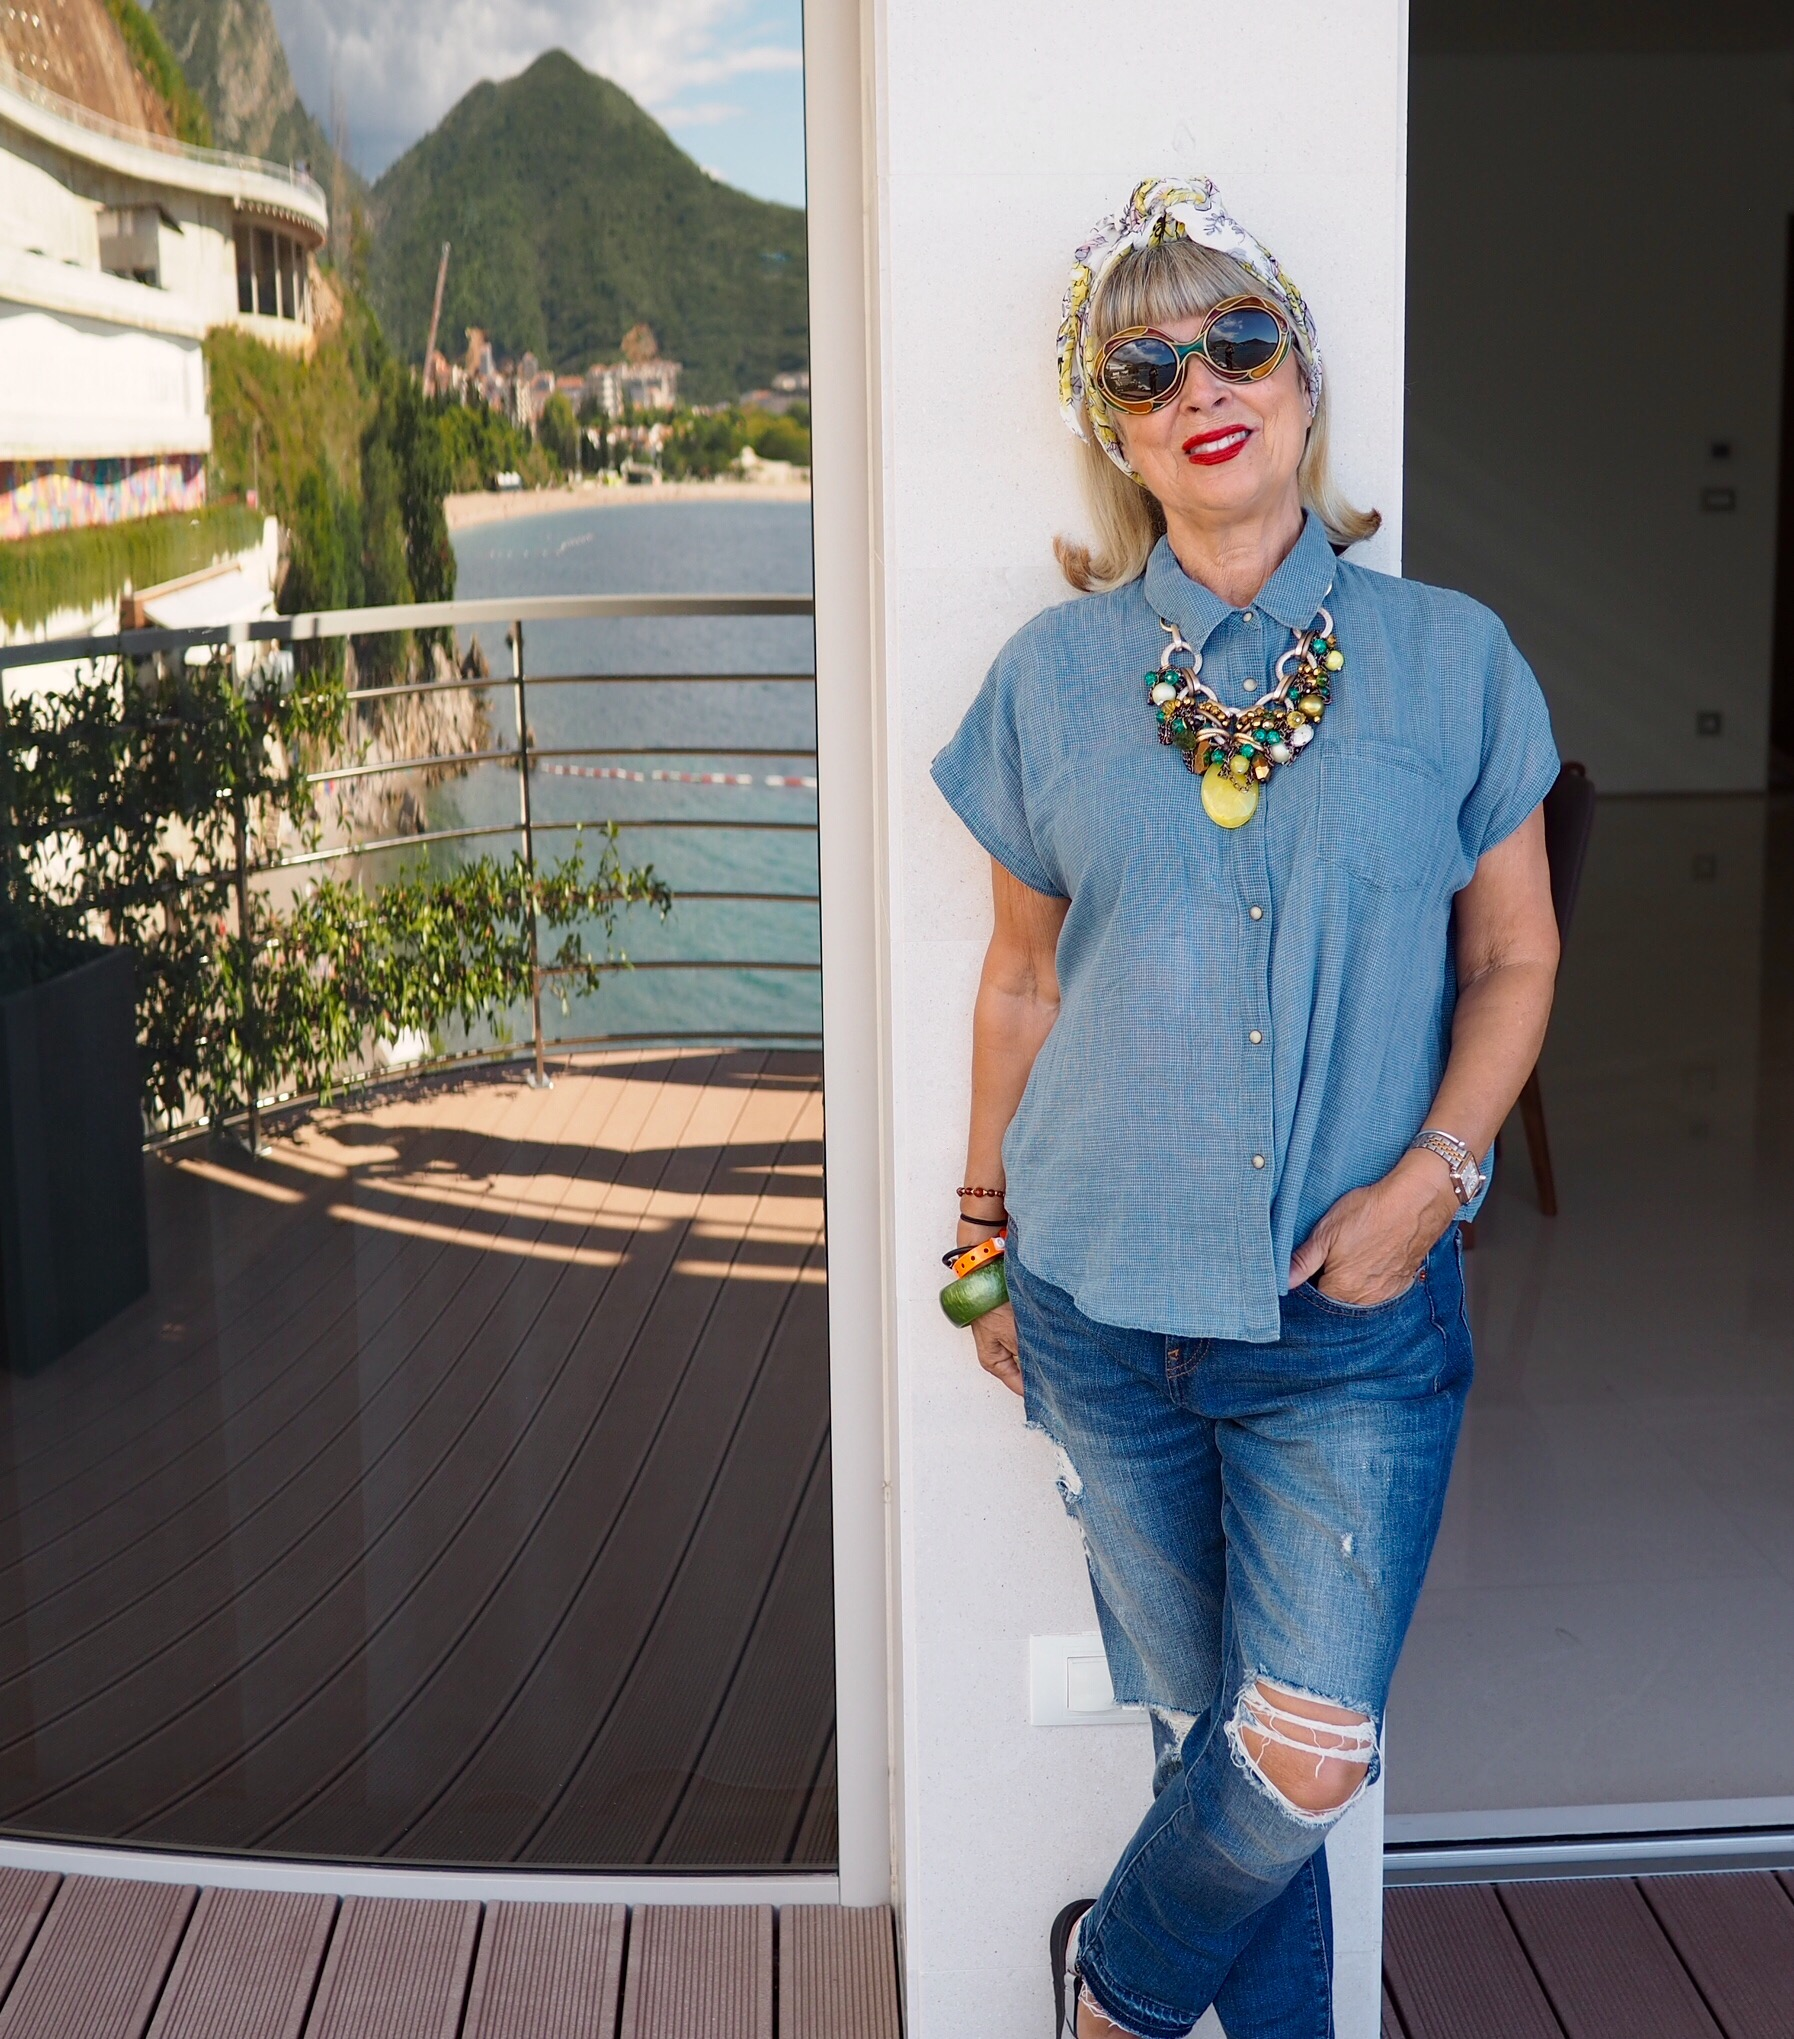 Vintage scarf & sunnies, with All Saints shirt & Gap jeans.